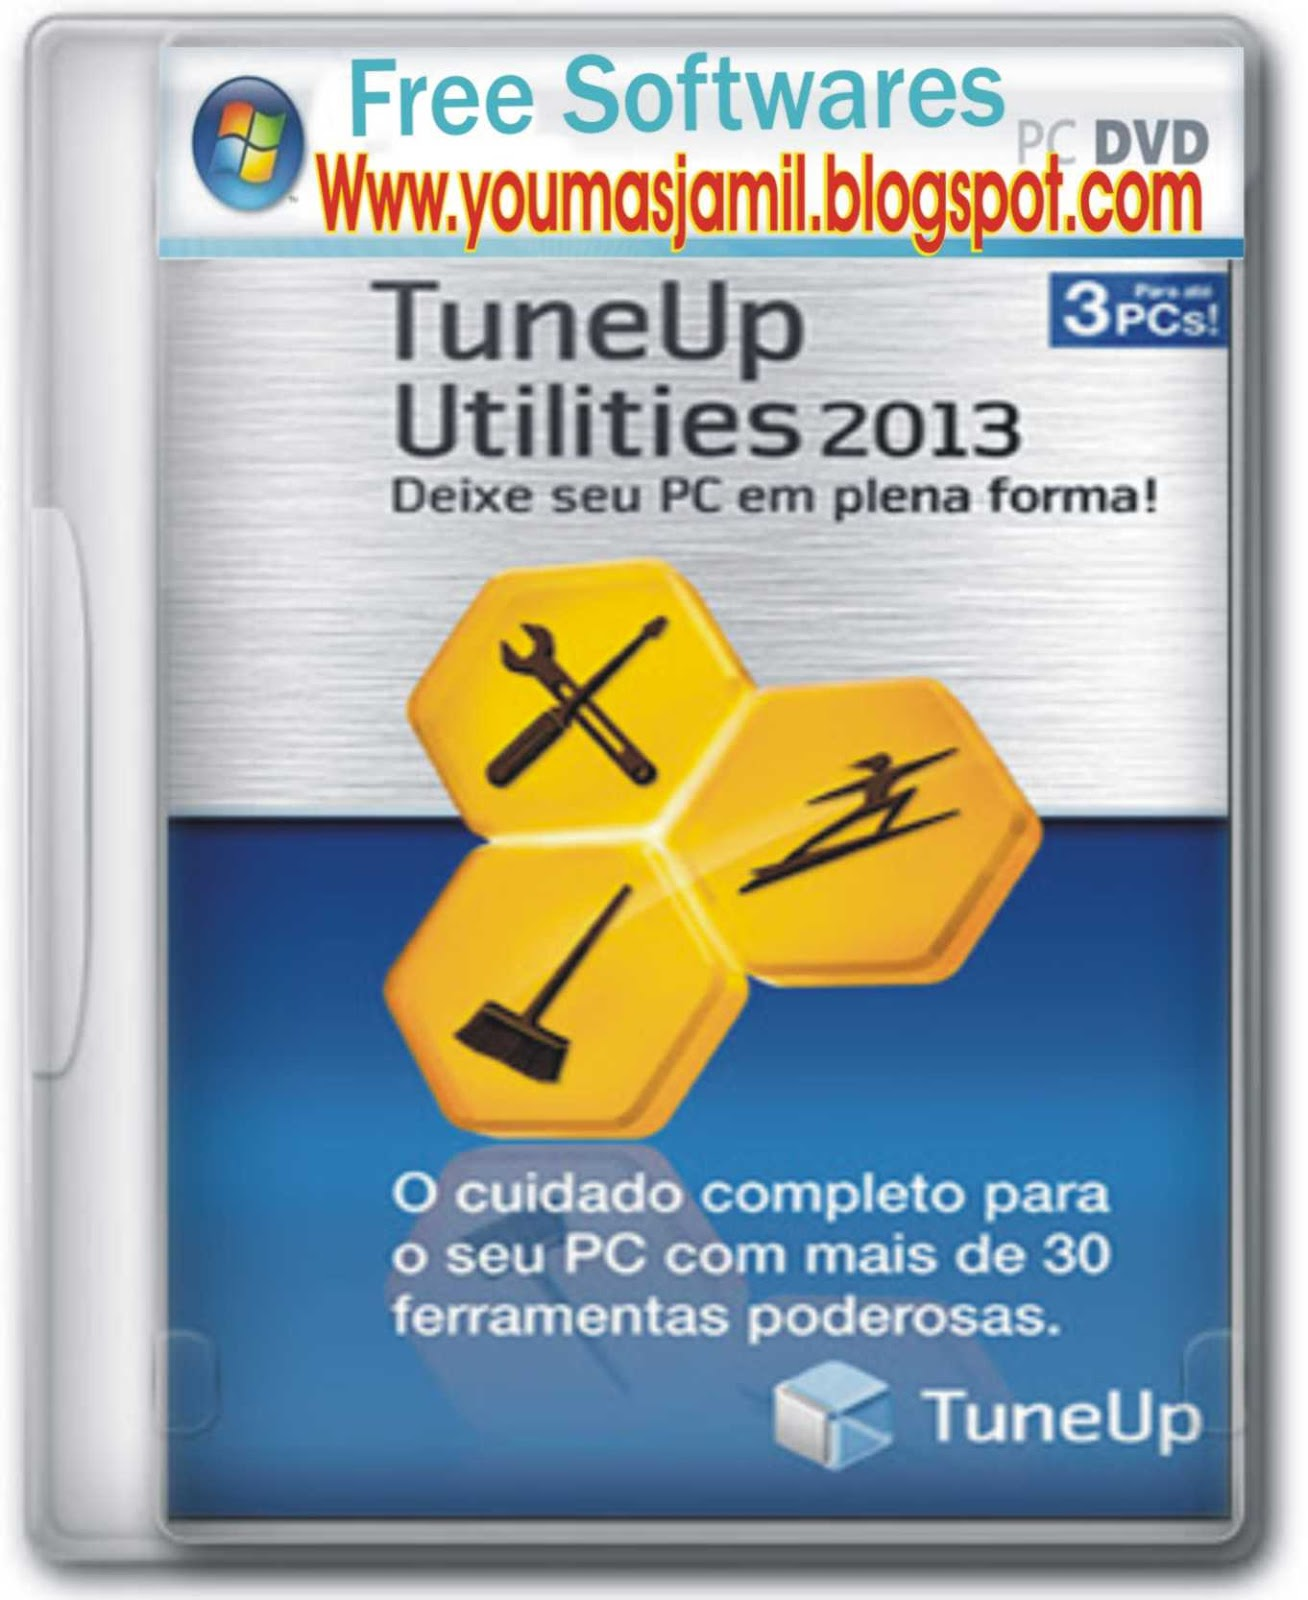 TuneUp Utilities Product Key For Free (English version) - Most i Want